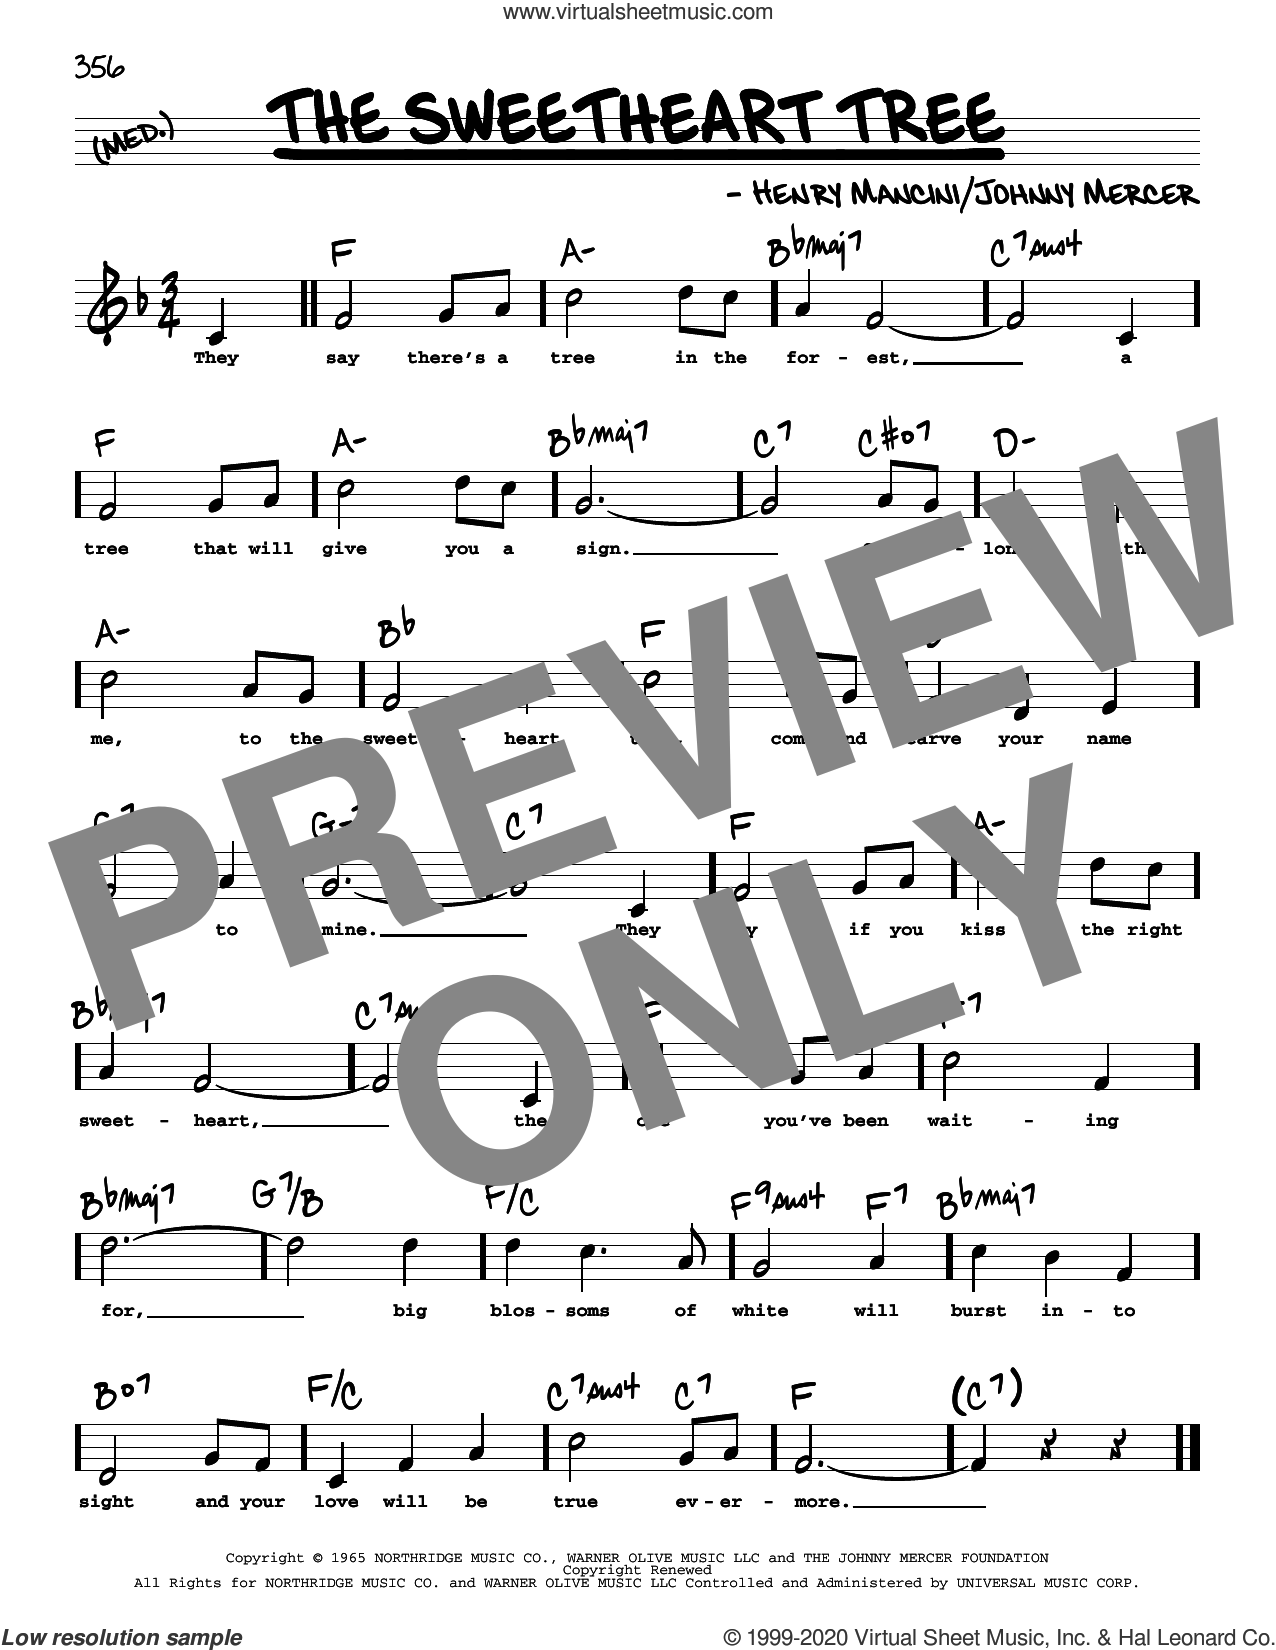 The Sweetheart Tree (High Voice) sheet music for voice and other instruments (high voice) by Johnny Mercer and Henry Mancini, intermediate skill level